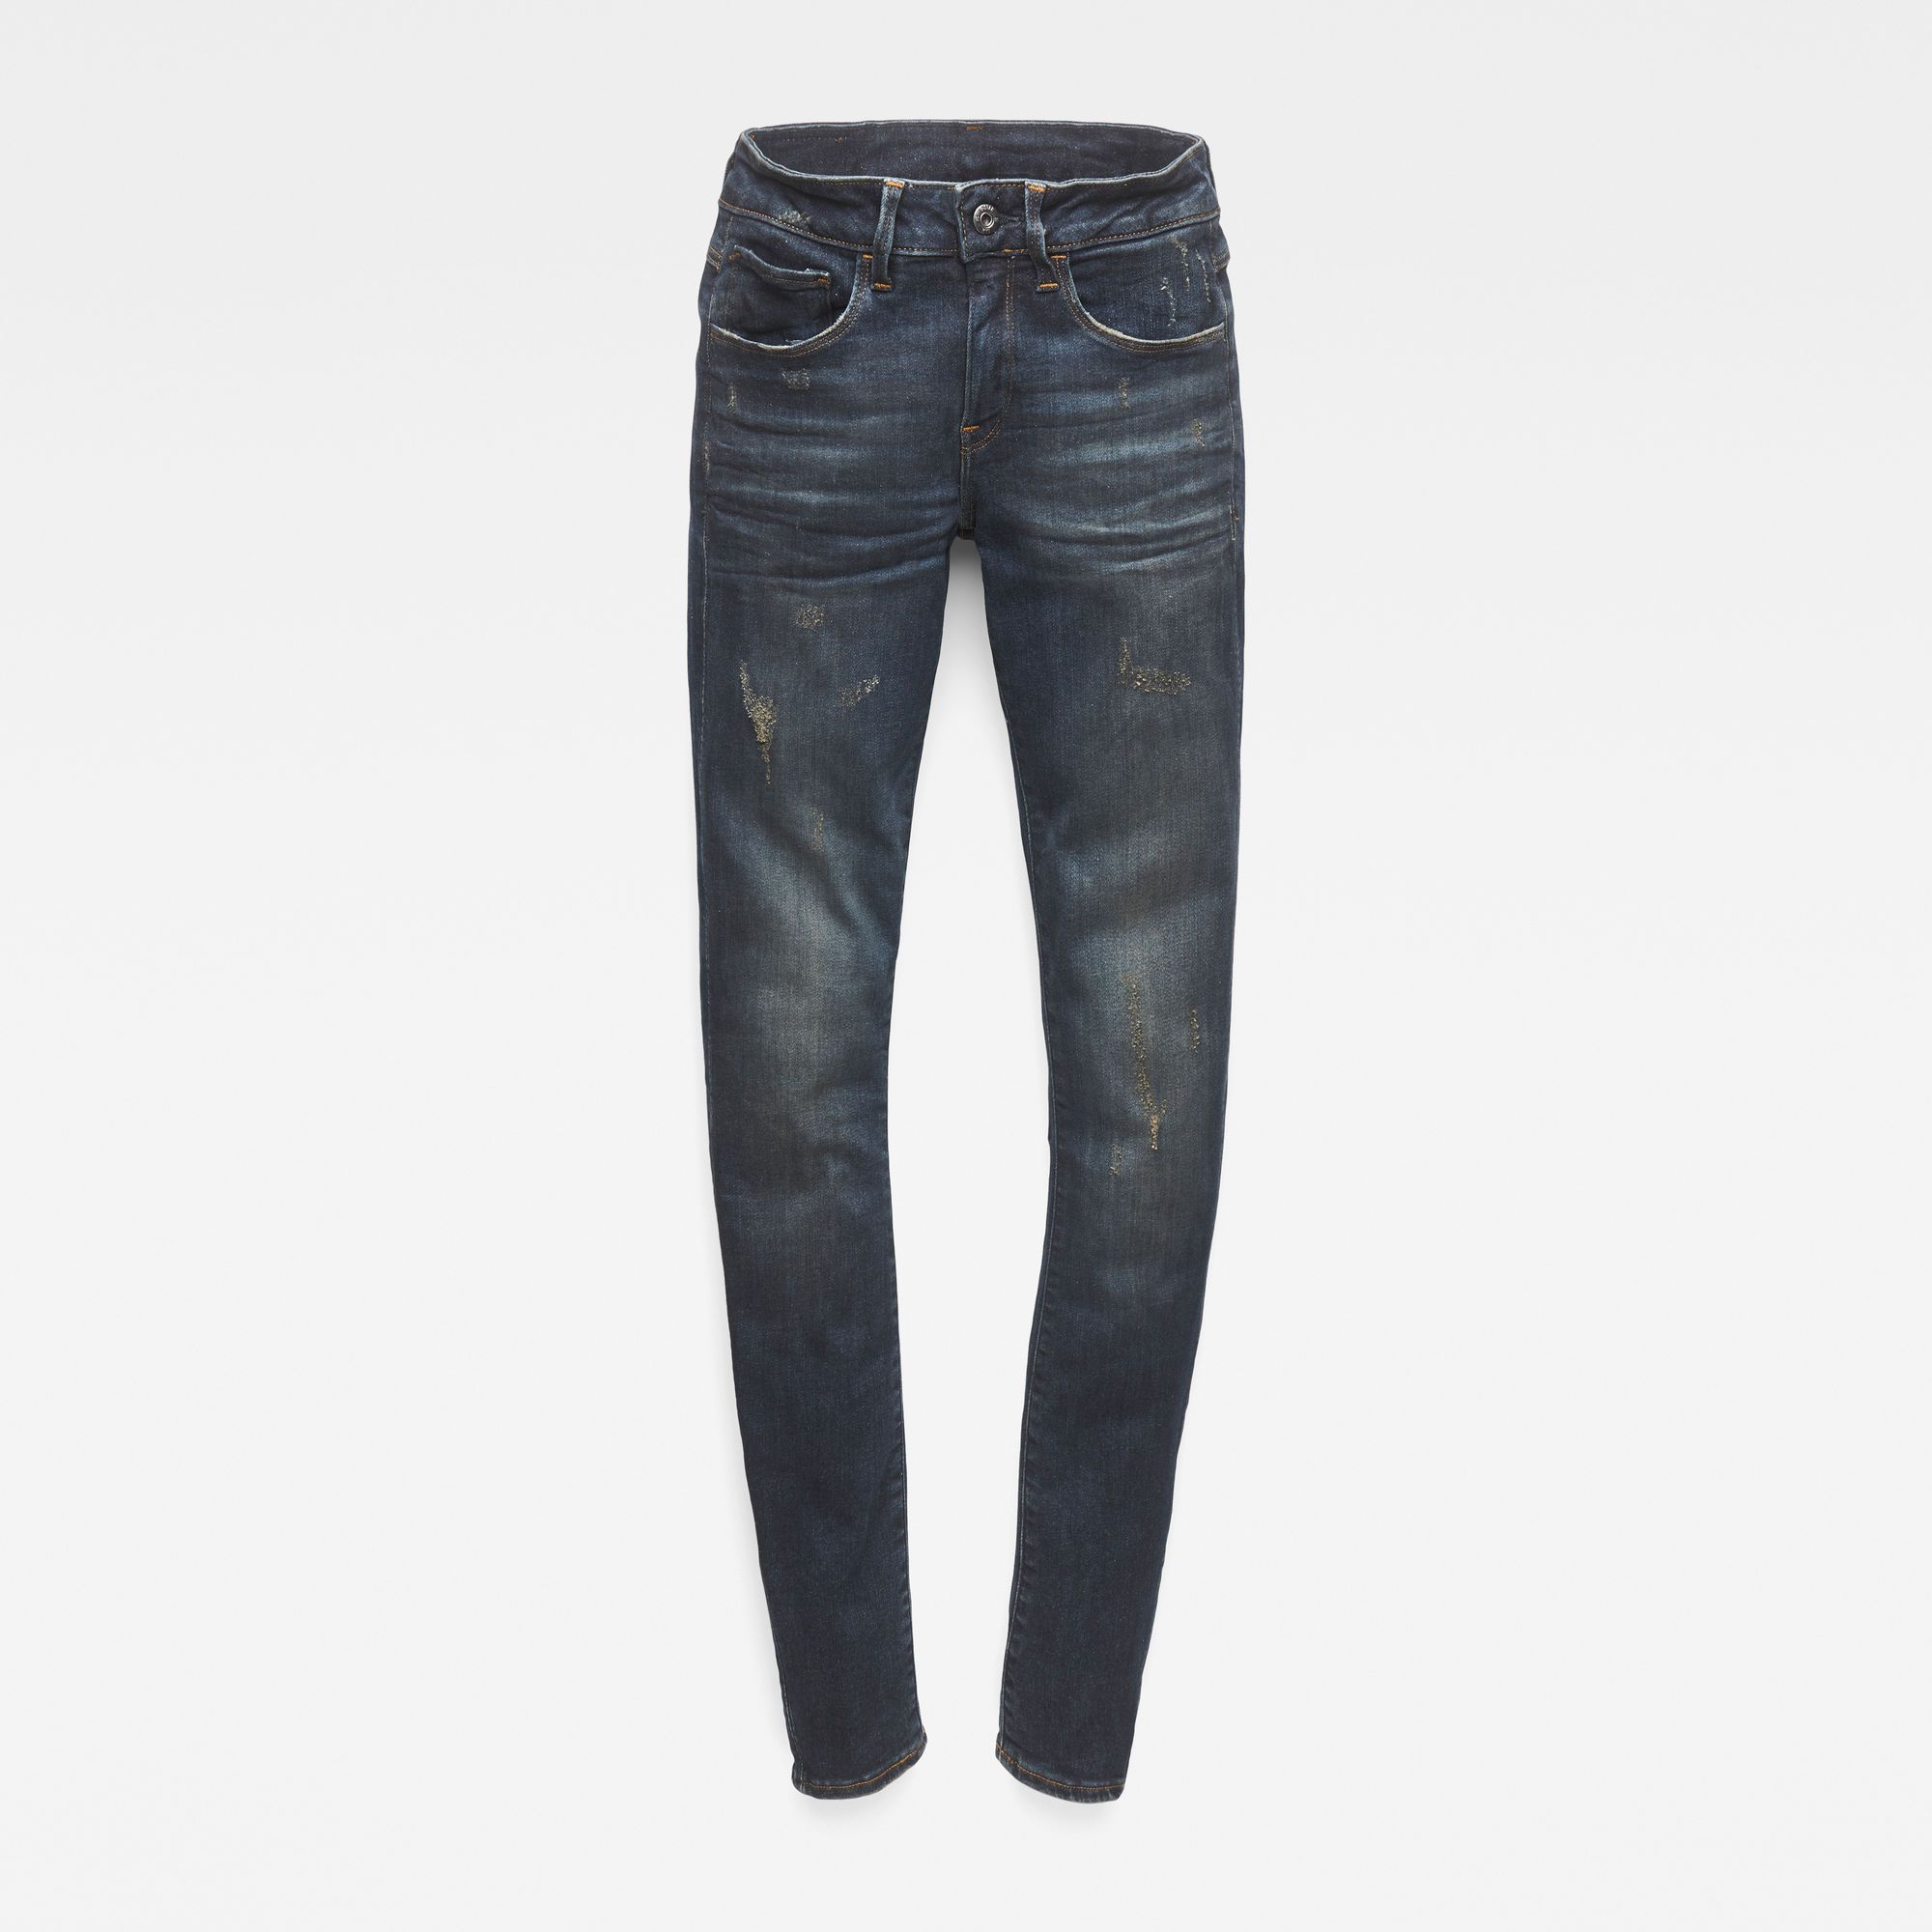 G-Star RAW 3301 Deconstructed Mid Waist Straight Jeans